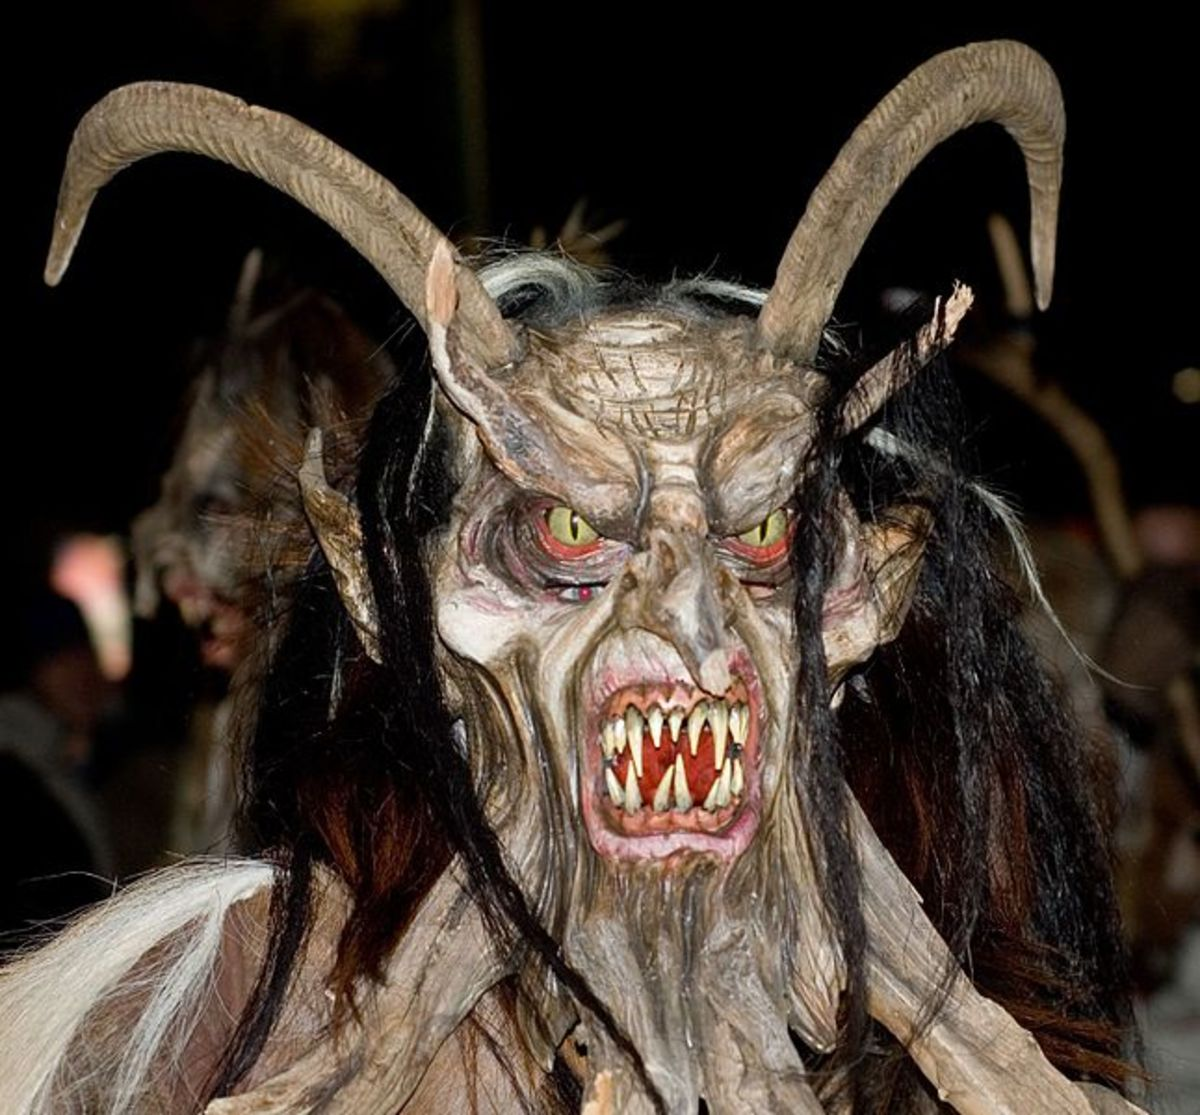 Krampus at Perchtenlauf Klagenfurt, Anita Martinz, 2006